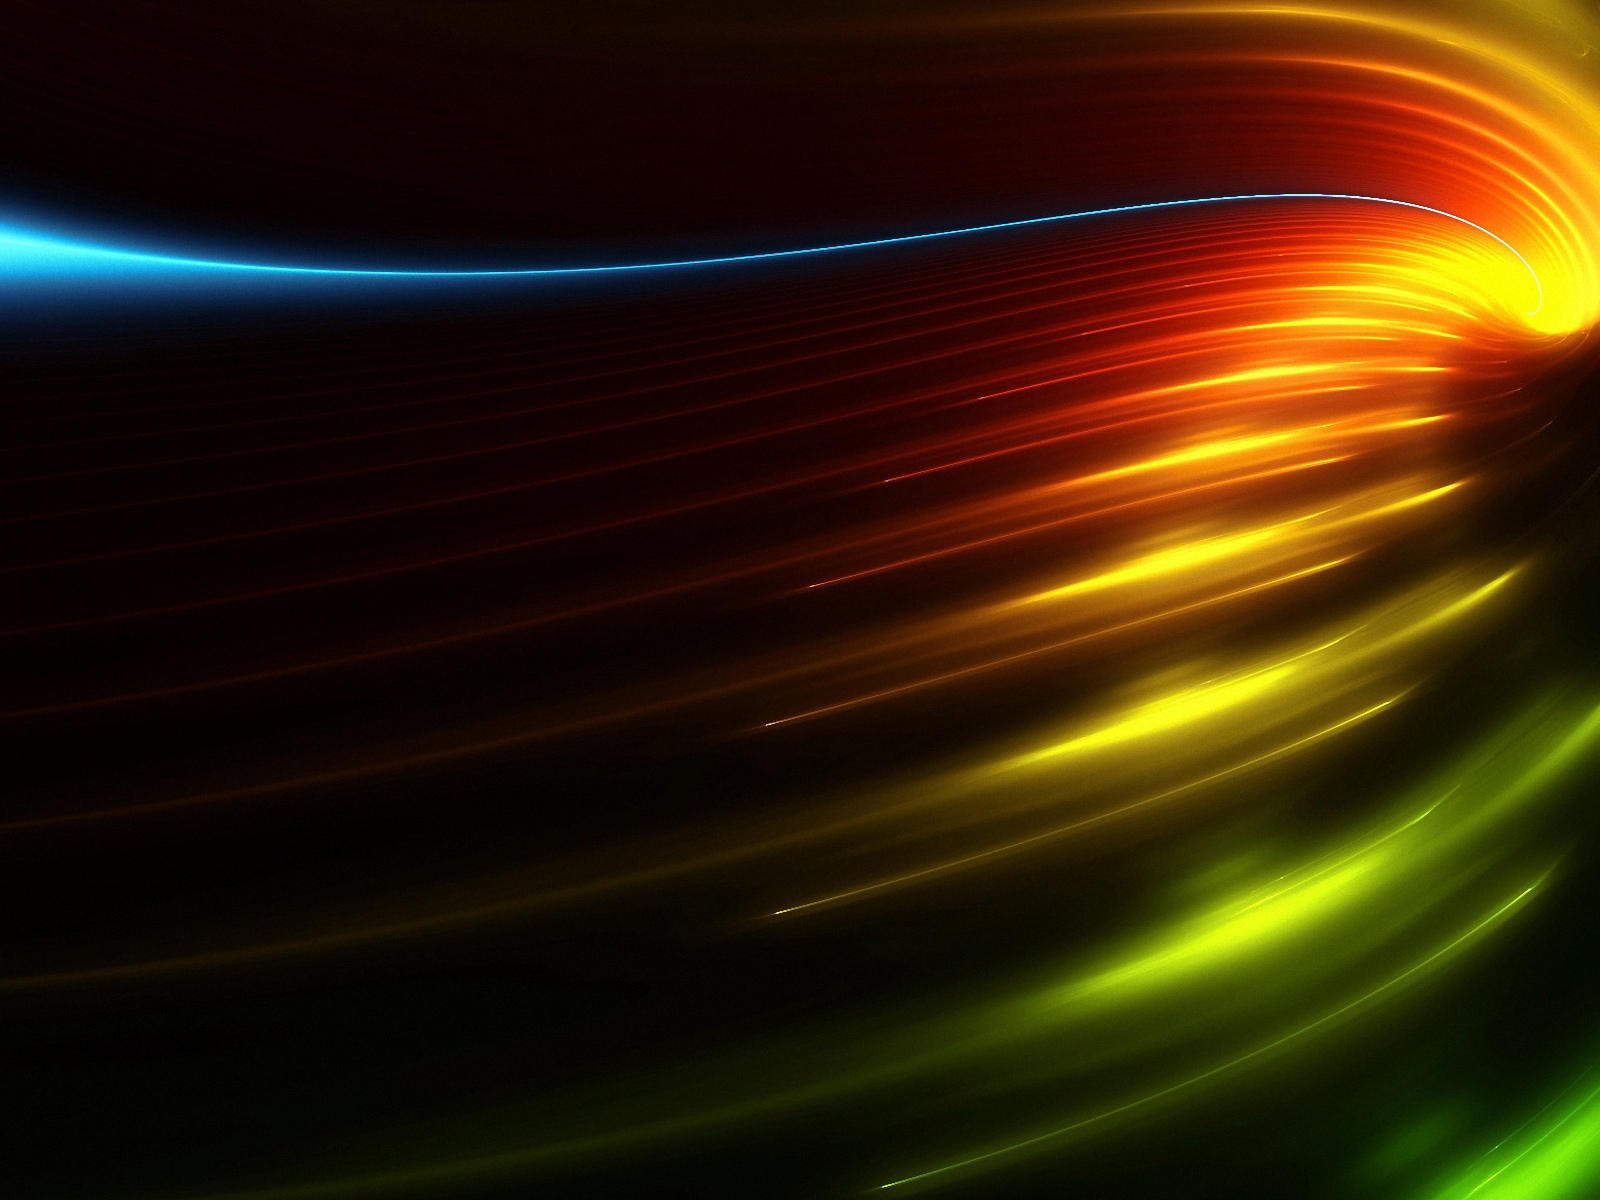 wallpapers hd desktop wallpapers free online abstract wallpapers